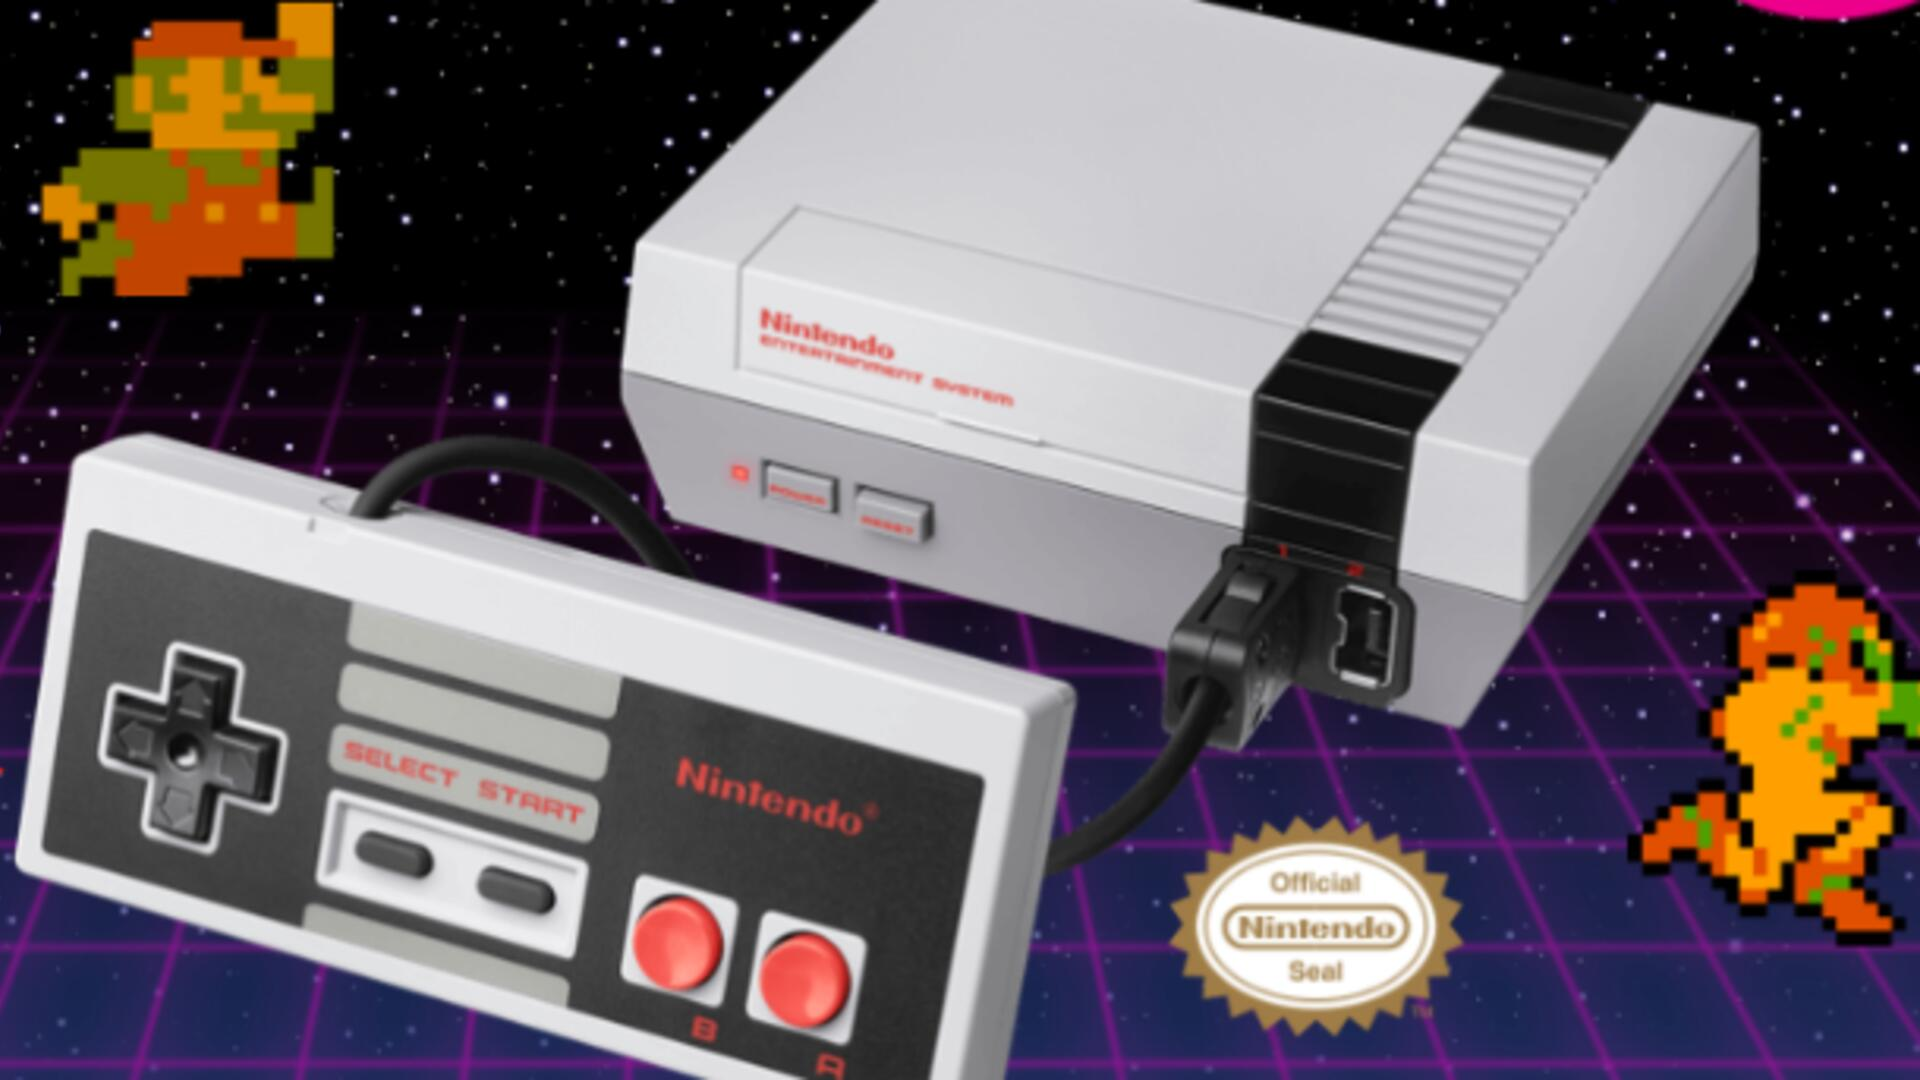 NES Classic Prices Rise With End of Production, Mini Famicom Discontinued Too